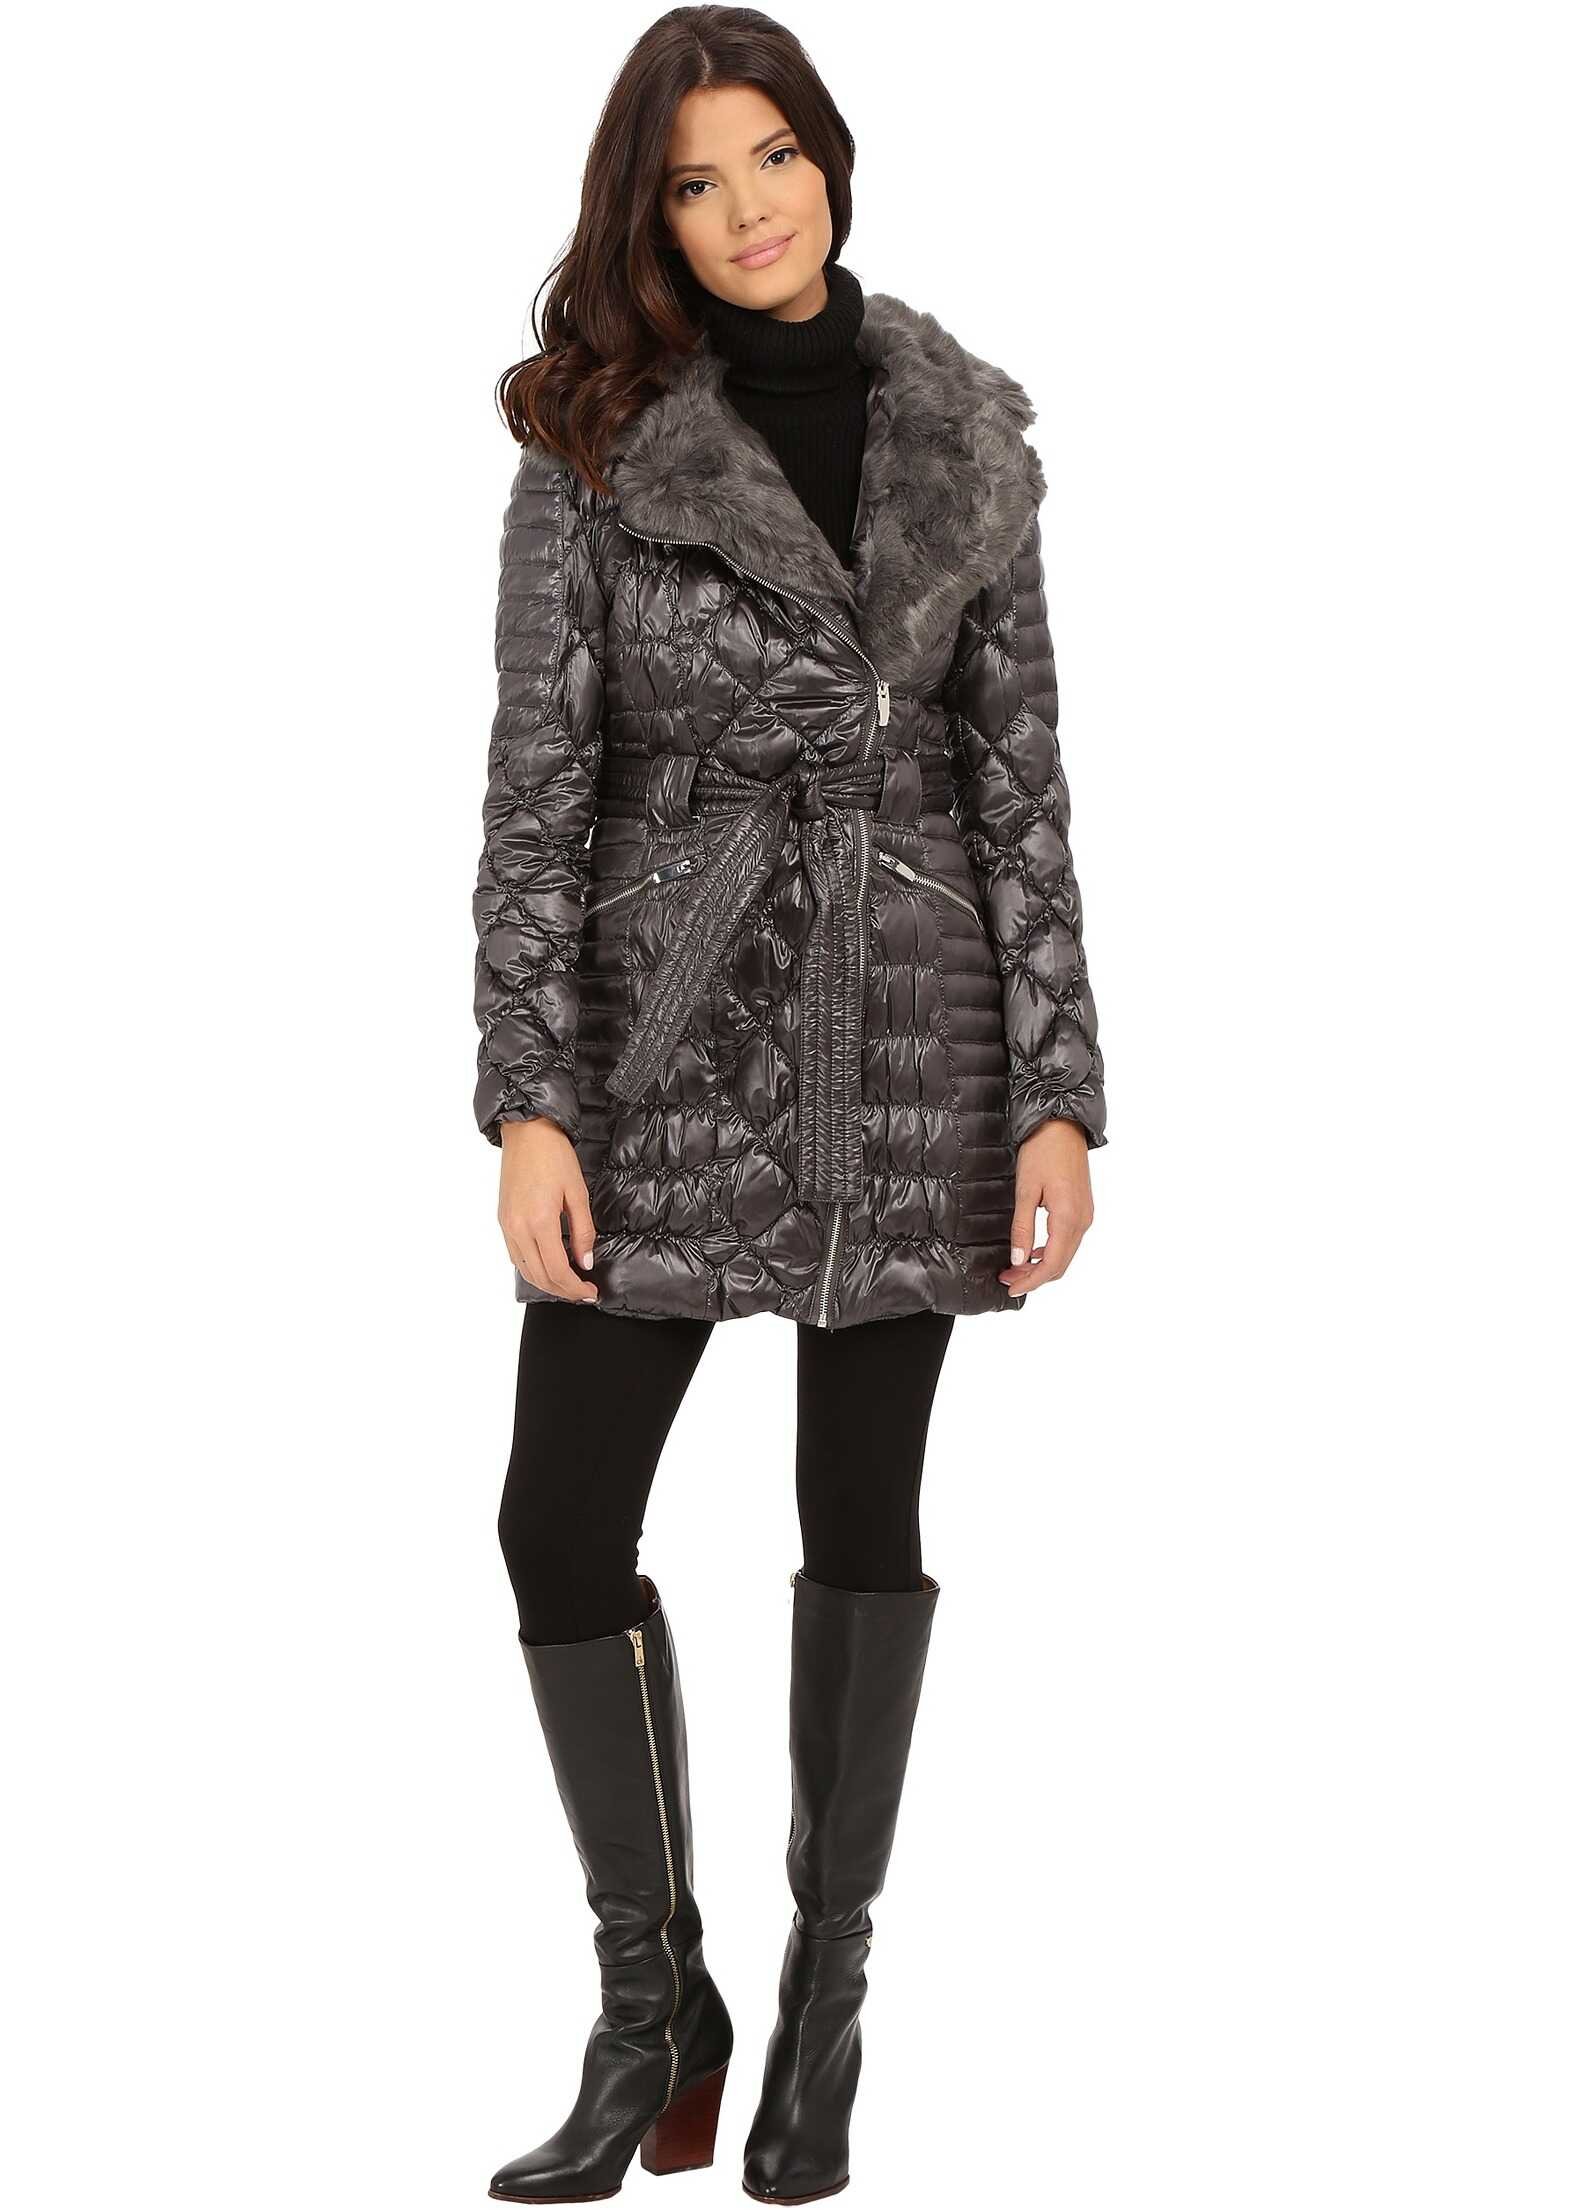 Via Spiga Kate Middleton Down Coat w/ Faux Fur Gunmetal